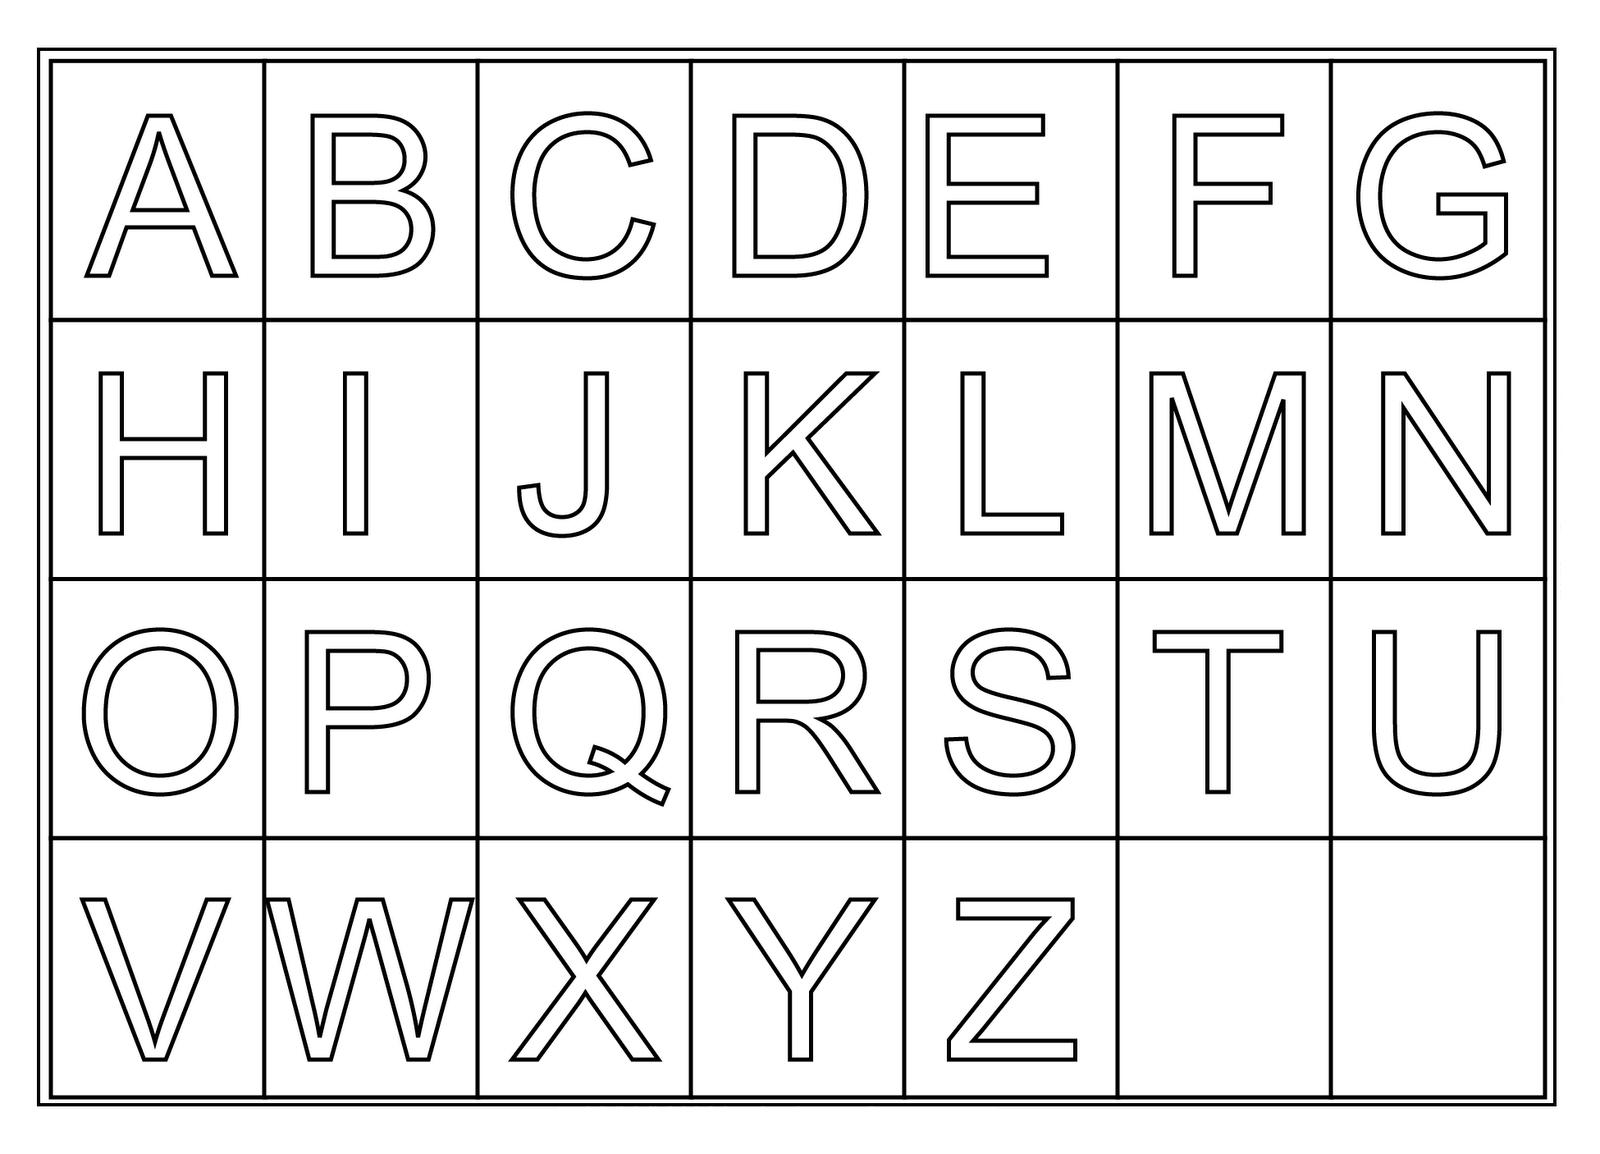 Preschool Abc Worksheets – With Also Free Pre K Printables Worksheet | Abc Printable Worksheets